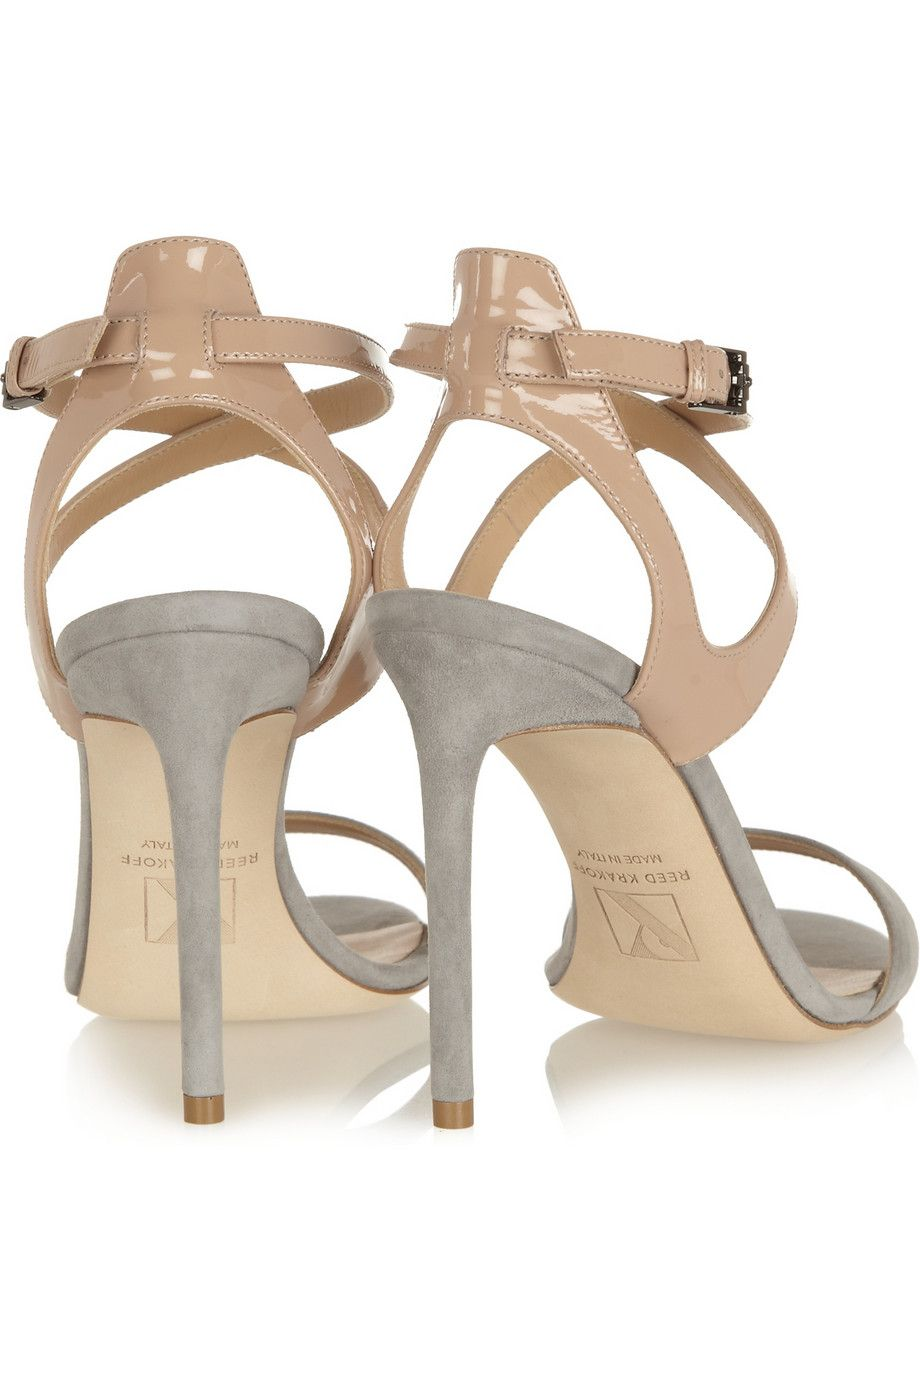 Reed Krakoff | Patent-leather and suede sandals  | NET-A-PORTER.COM